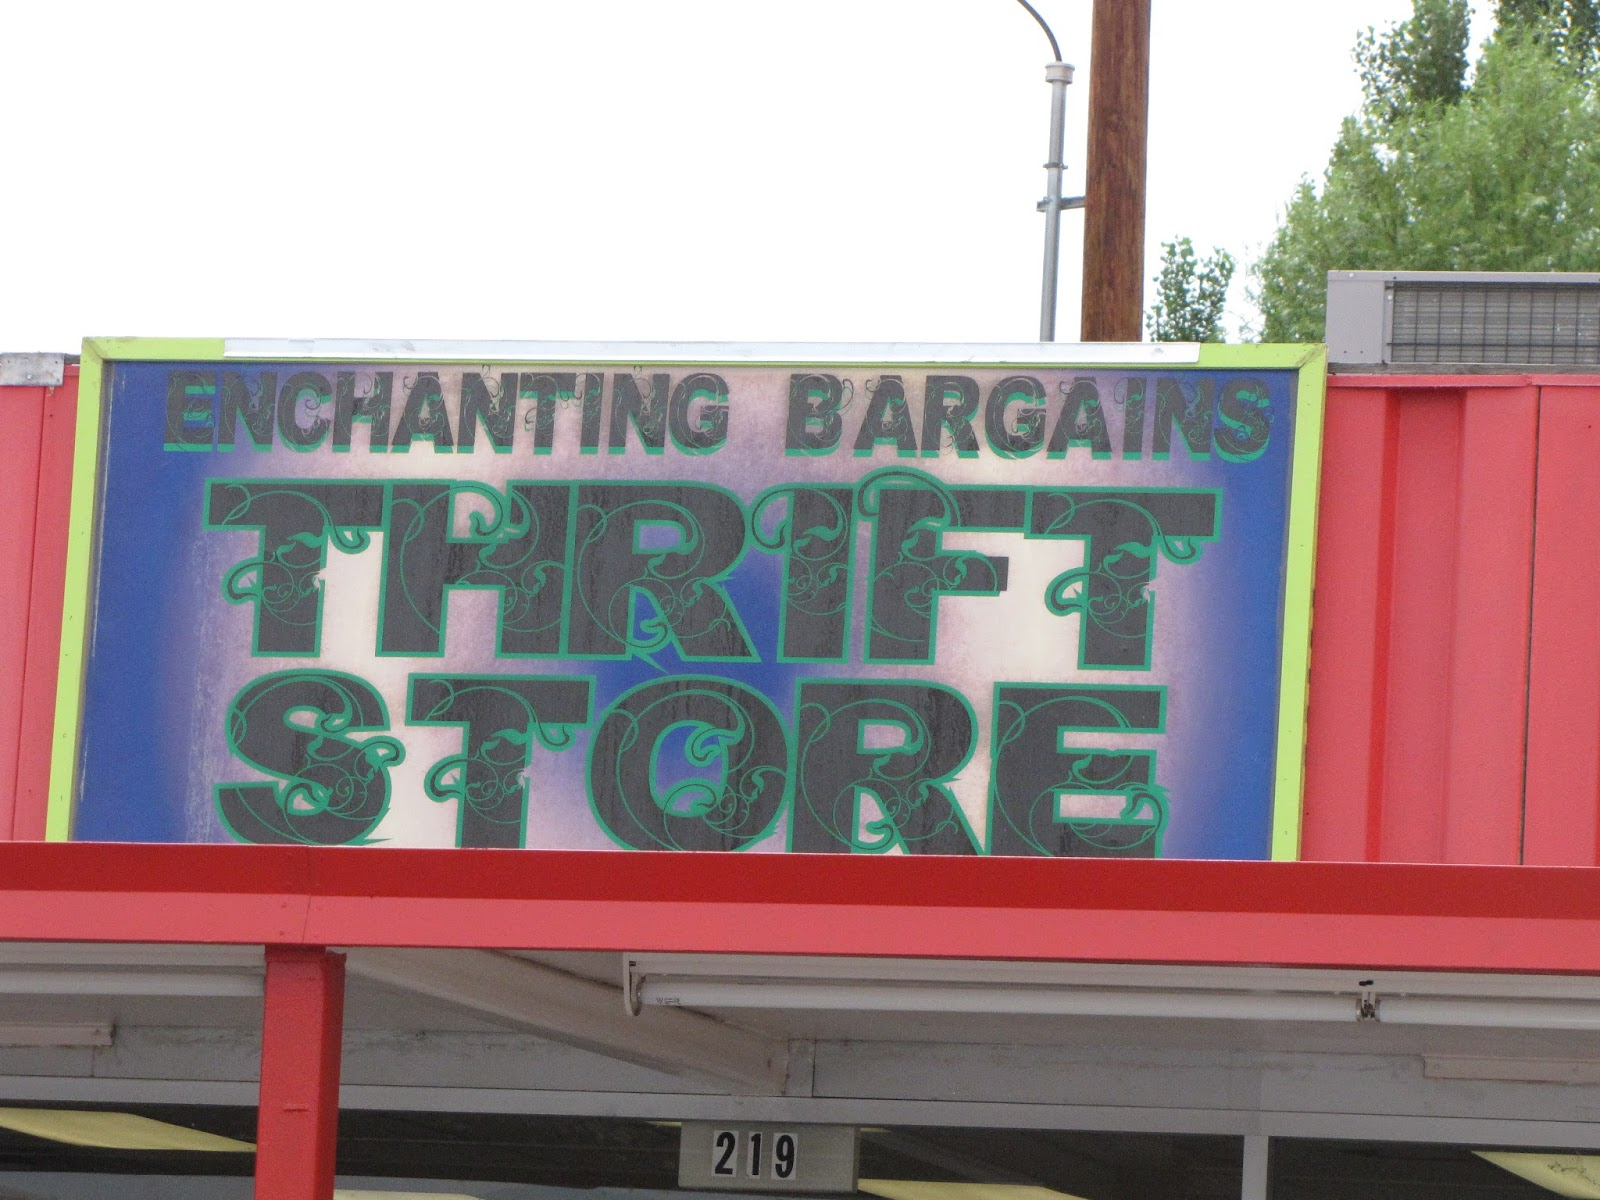 Ems joie de weird 2015 enchanting bargains thrift store in espaola is also on the southbound side of hwy 84 285 a bit farther north than boomerangs fandeluxe Images